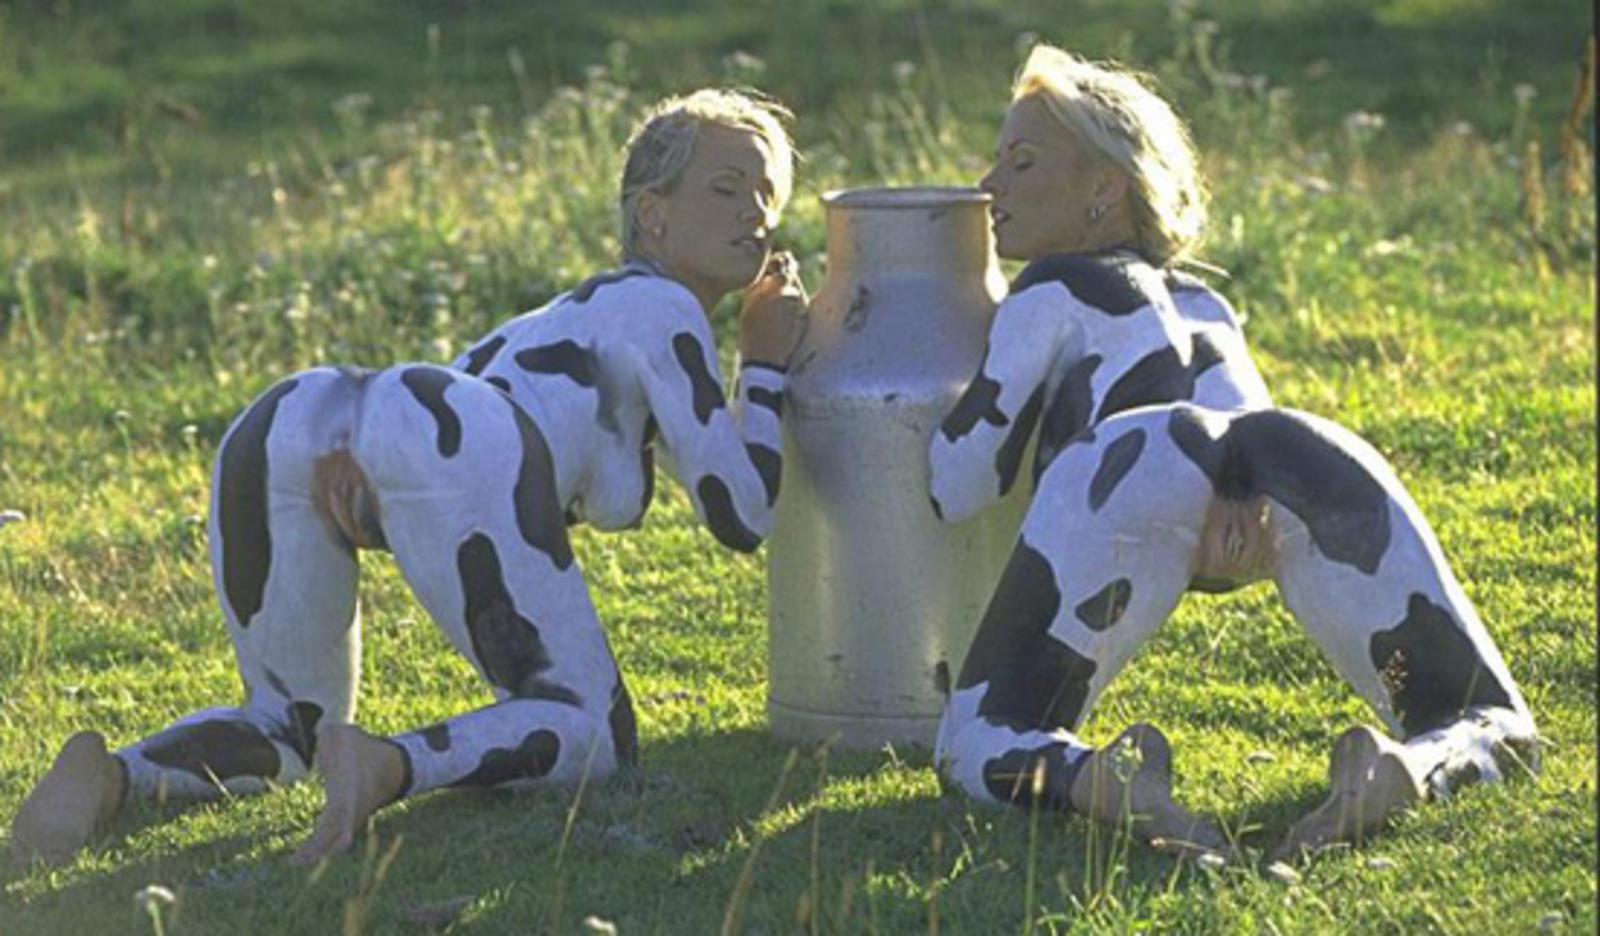 Porn girl human cow sexy photo